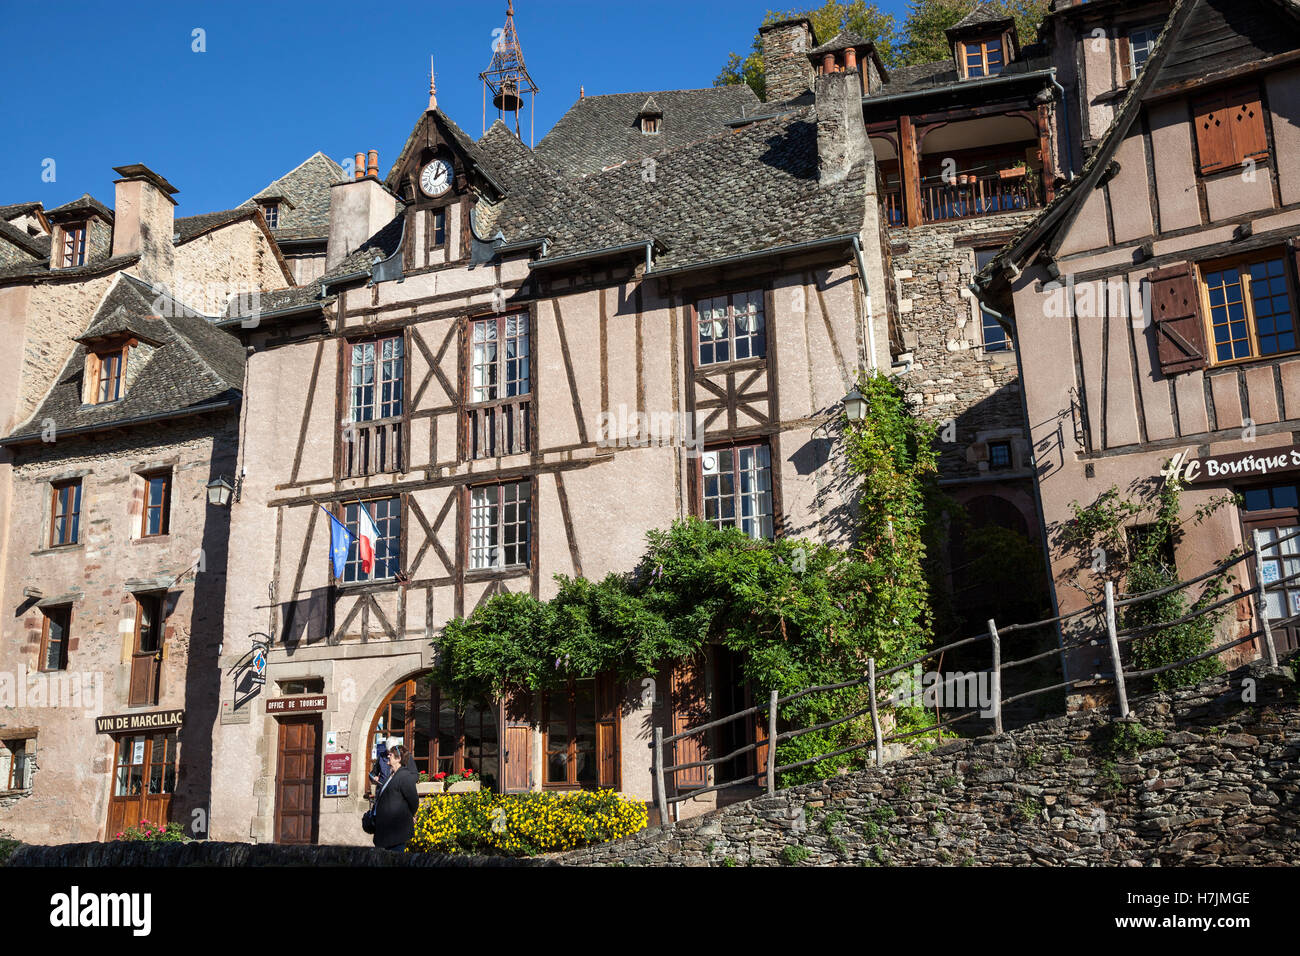 The small medieval village of Conques (France). It shows visitors its streets lined by old half-timbered houses Stock Photo